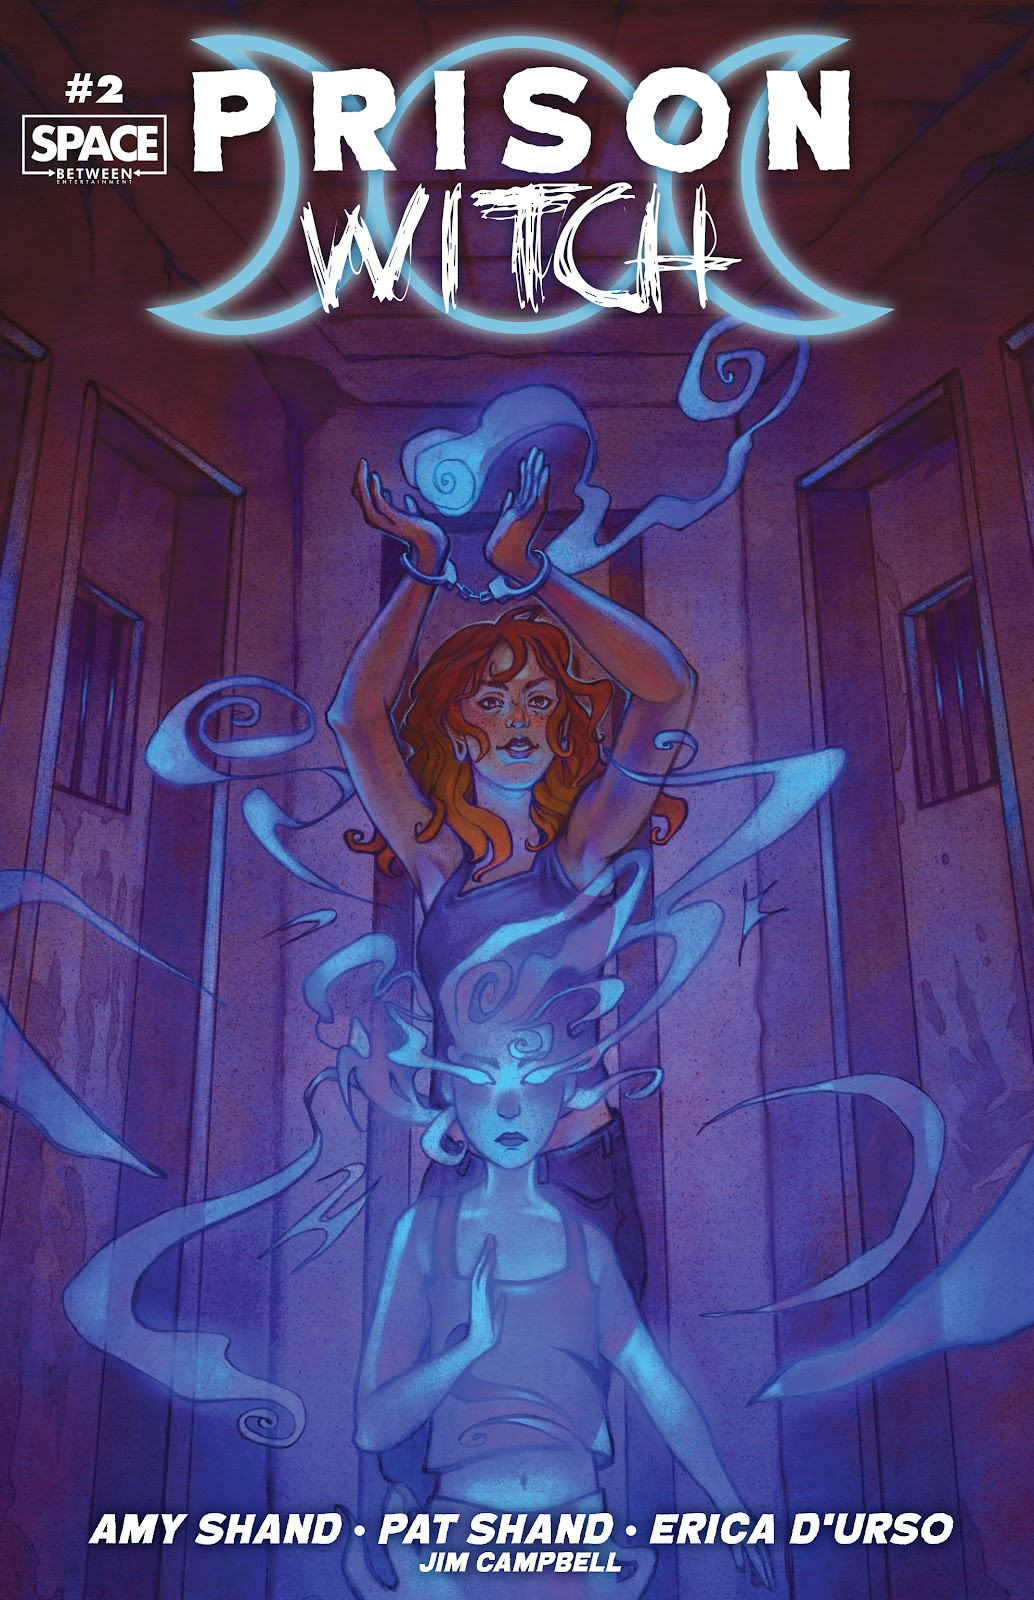 Read online Prison Witch comic -  Issue #2 - 1